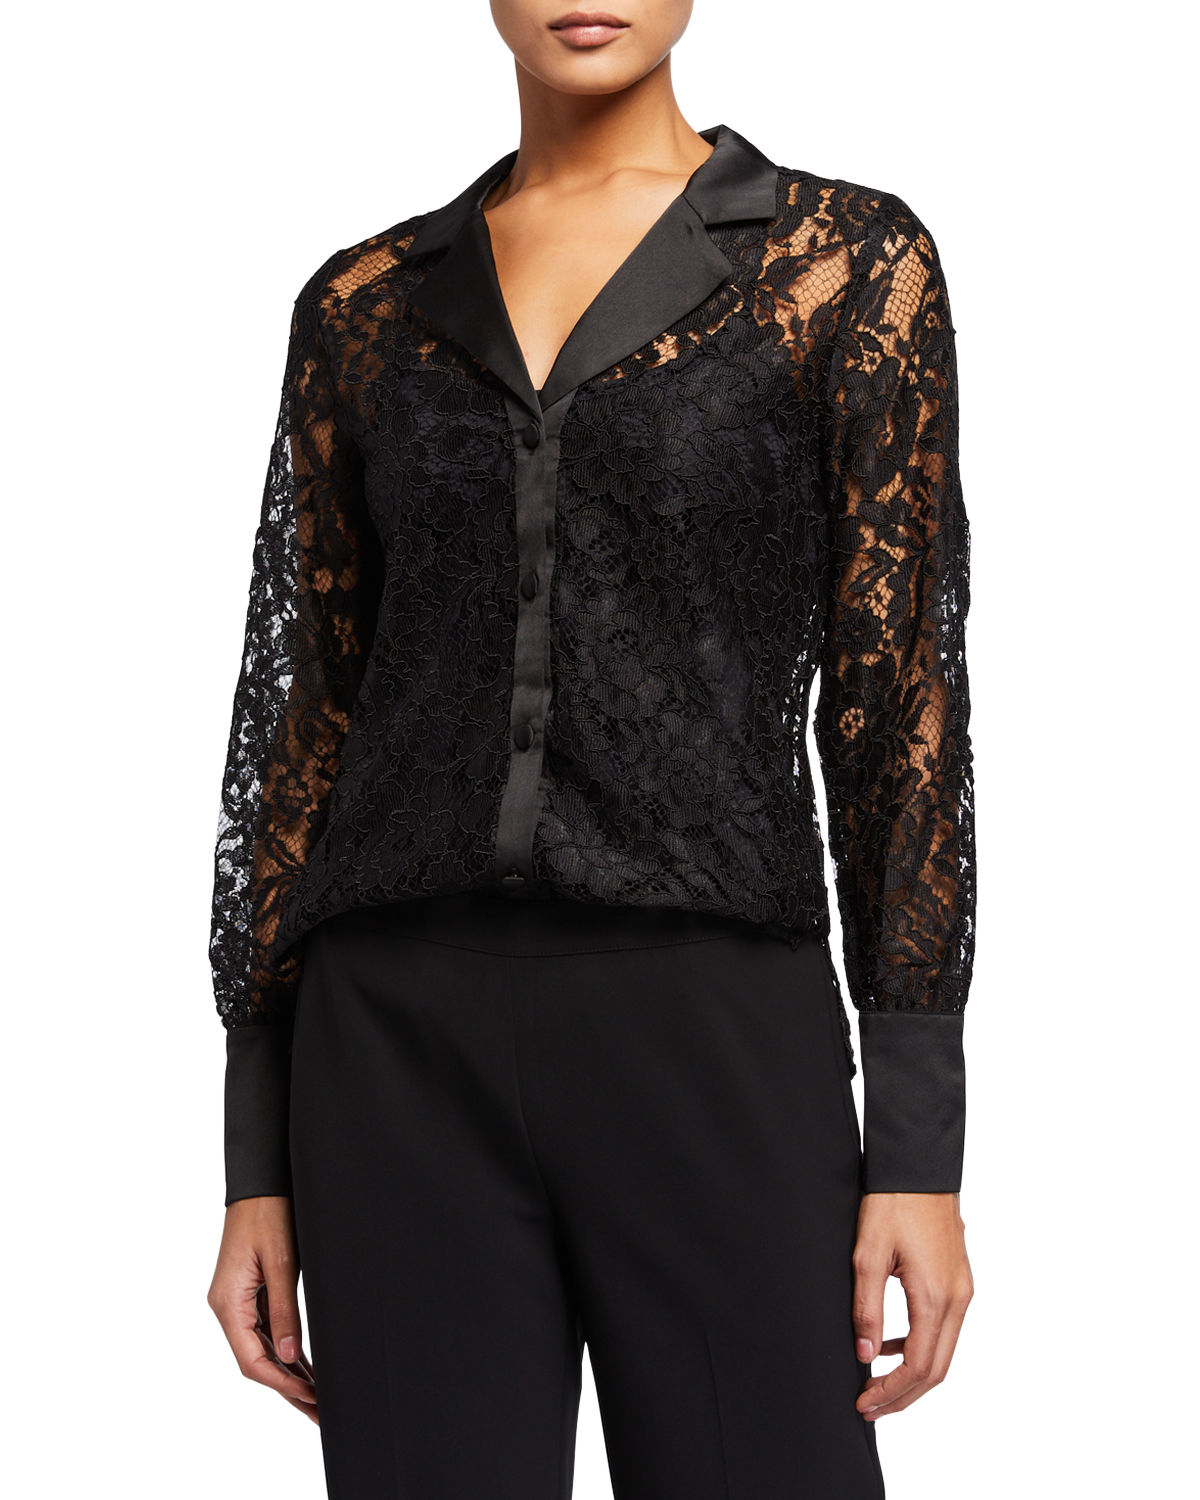 Laundry By Shelli Segal Tops LACE BUTTON-DOWN BLOUSE